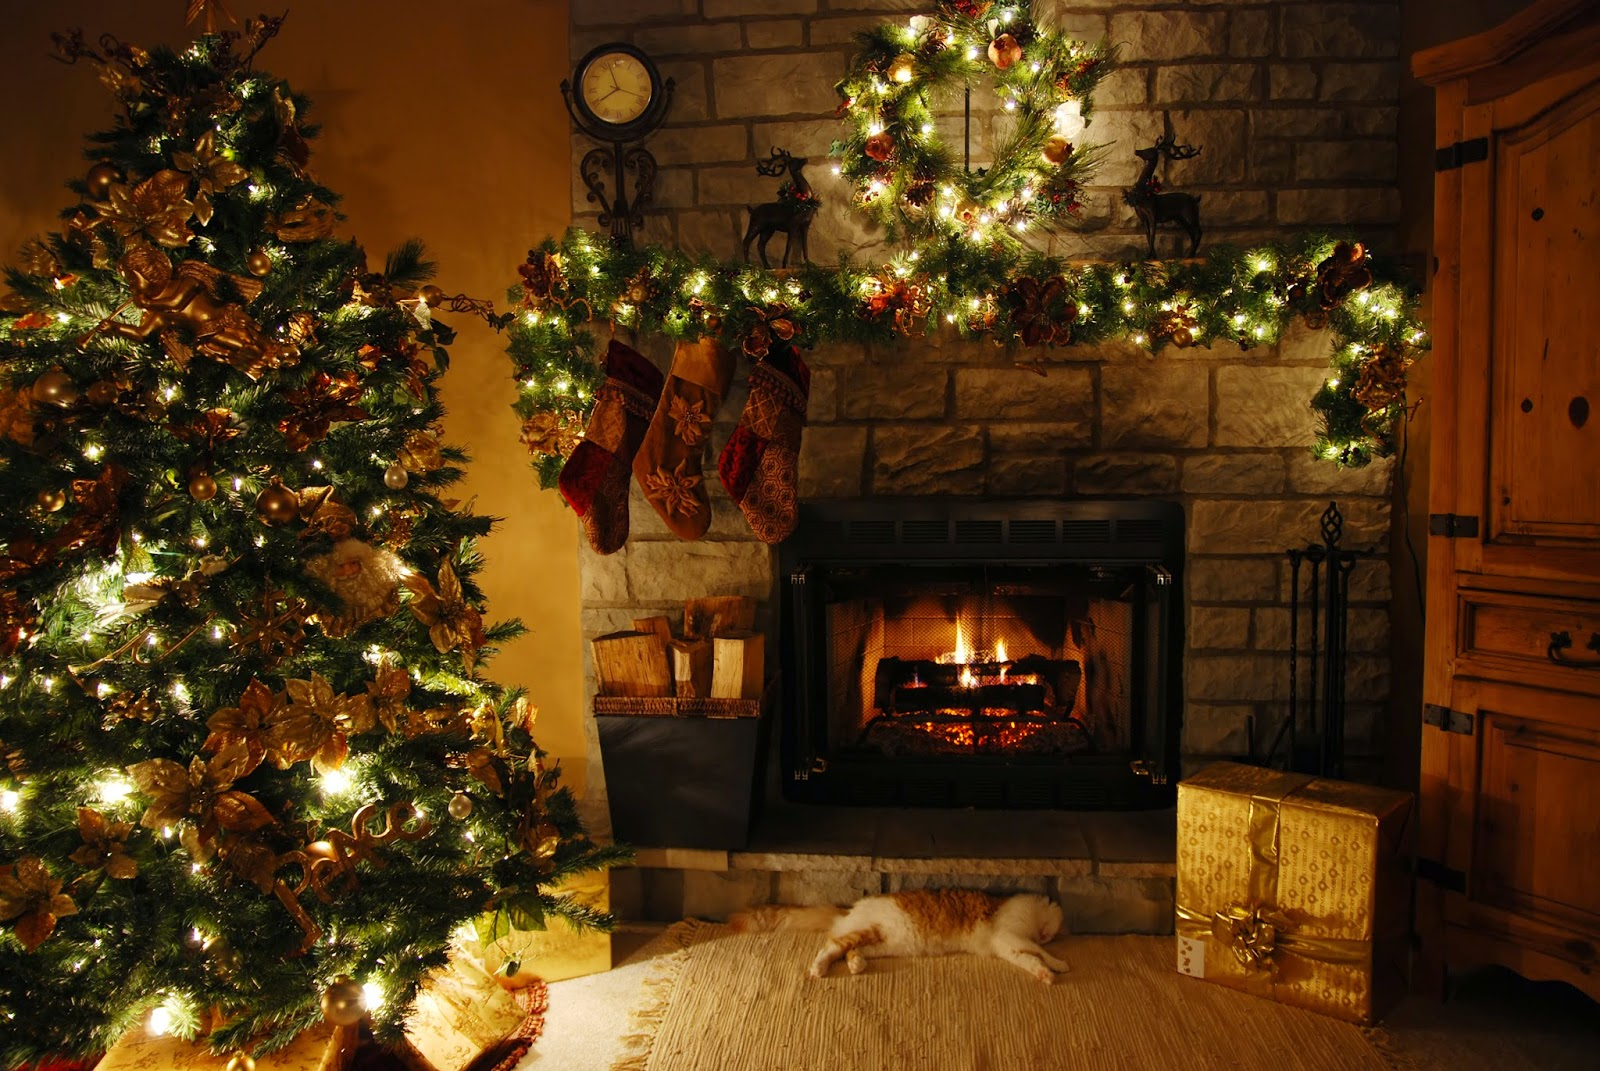 Christmas-fire-place-mantel-decoration-with-stockings-ornament-wallpaper-HD-pictures.jpg